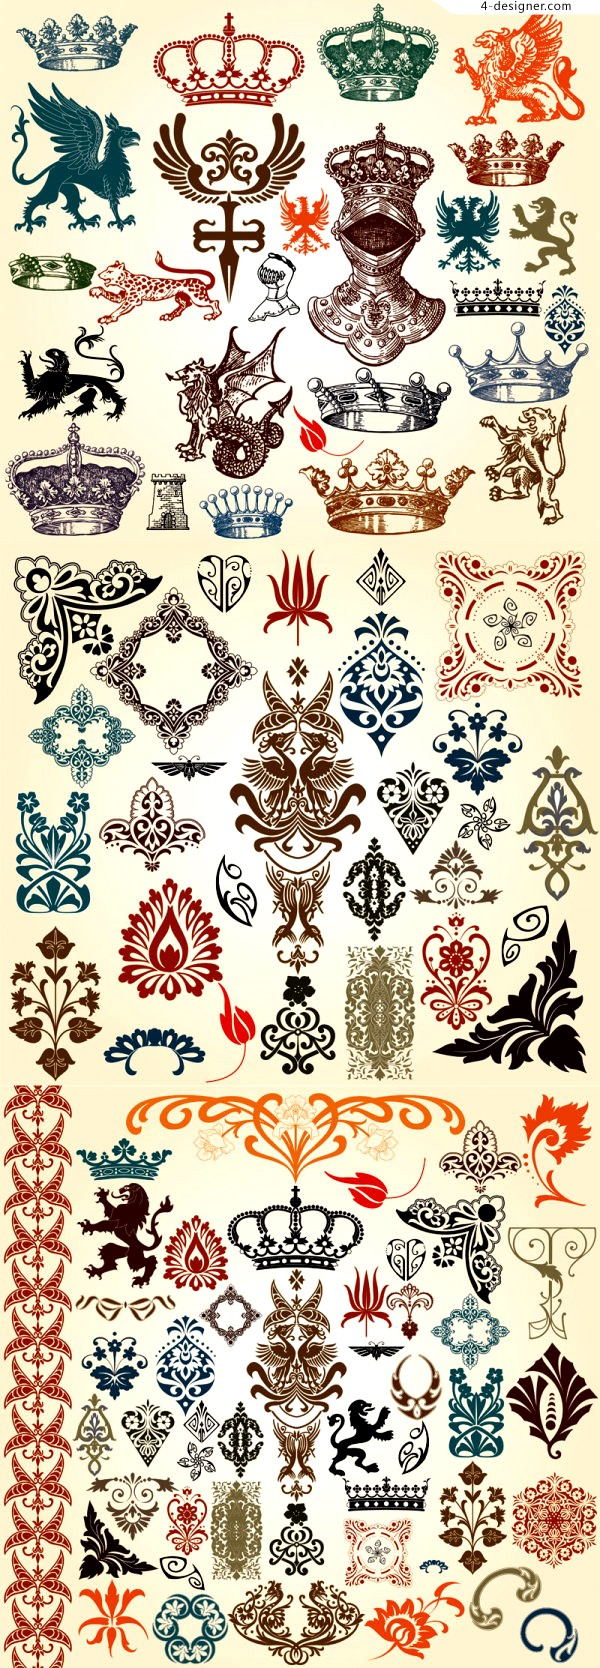 Common set of classic European pattern totem vector